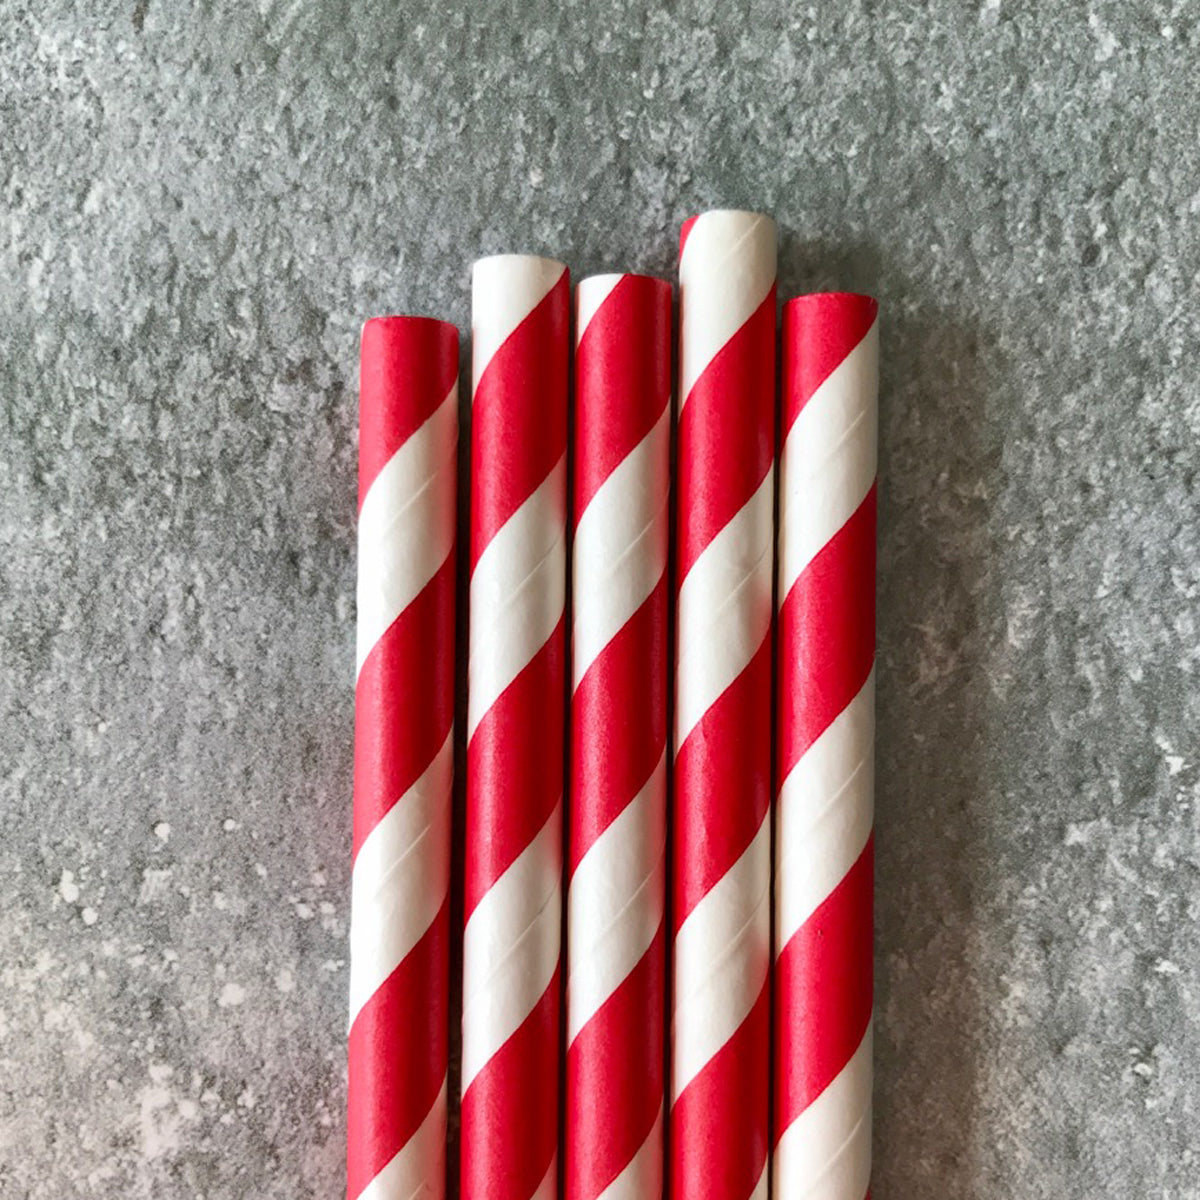 CLASSIC 6mm Bulk Paper Straws - Striped Red